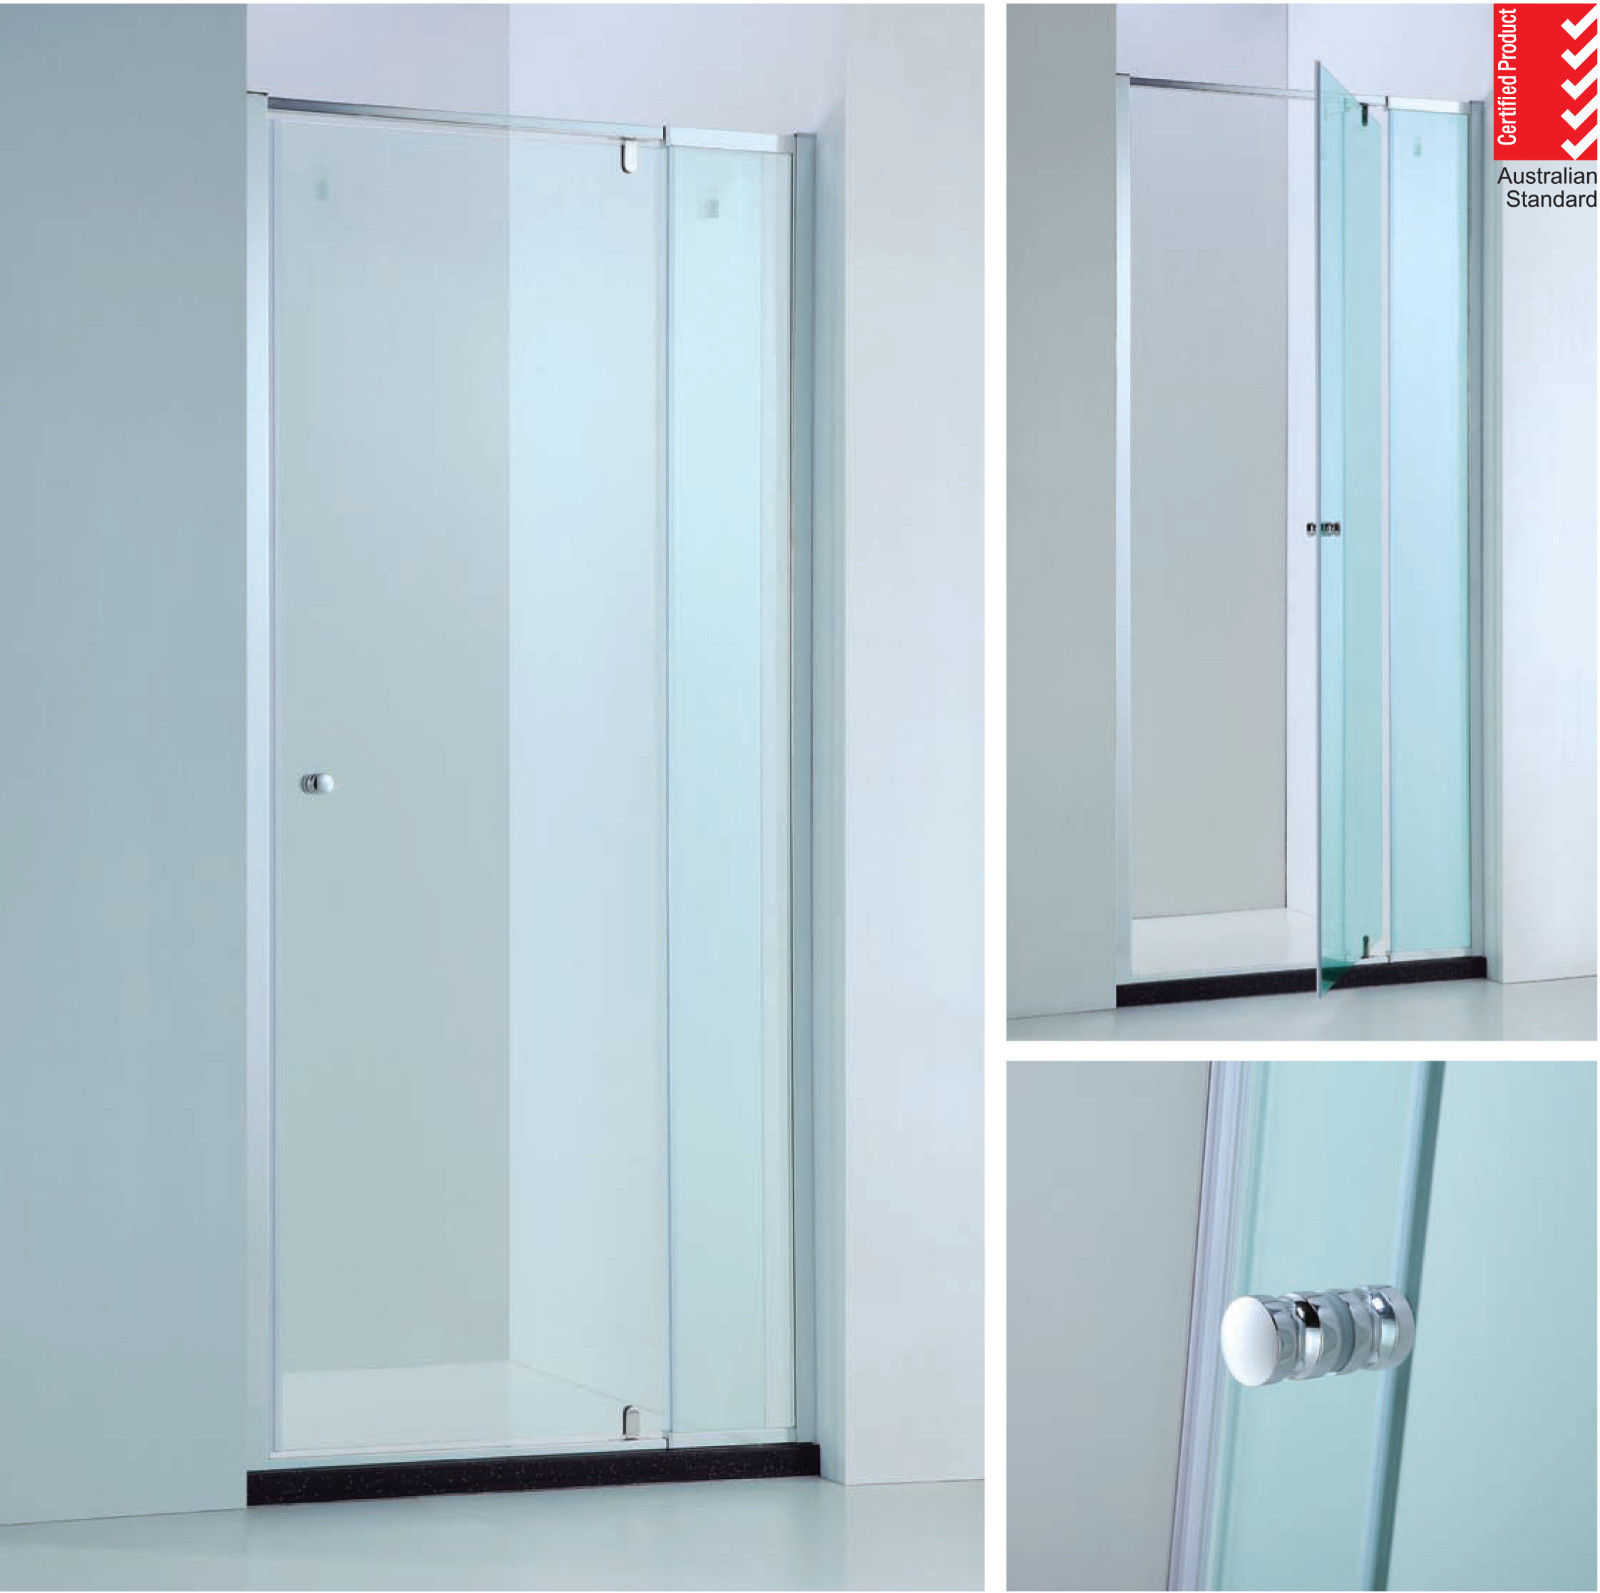 850 980mm Adjustable Wall To Wall Semi Frameless Pivot Glass Panel Shower Screen